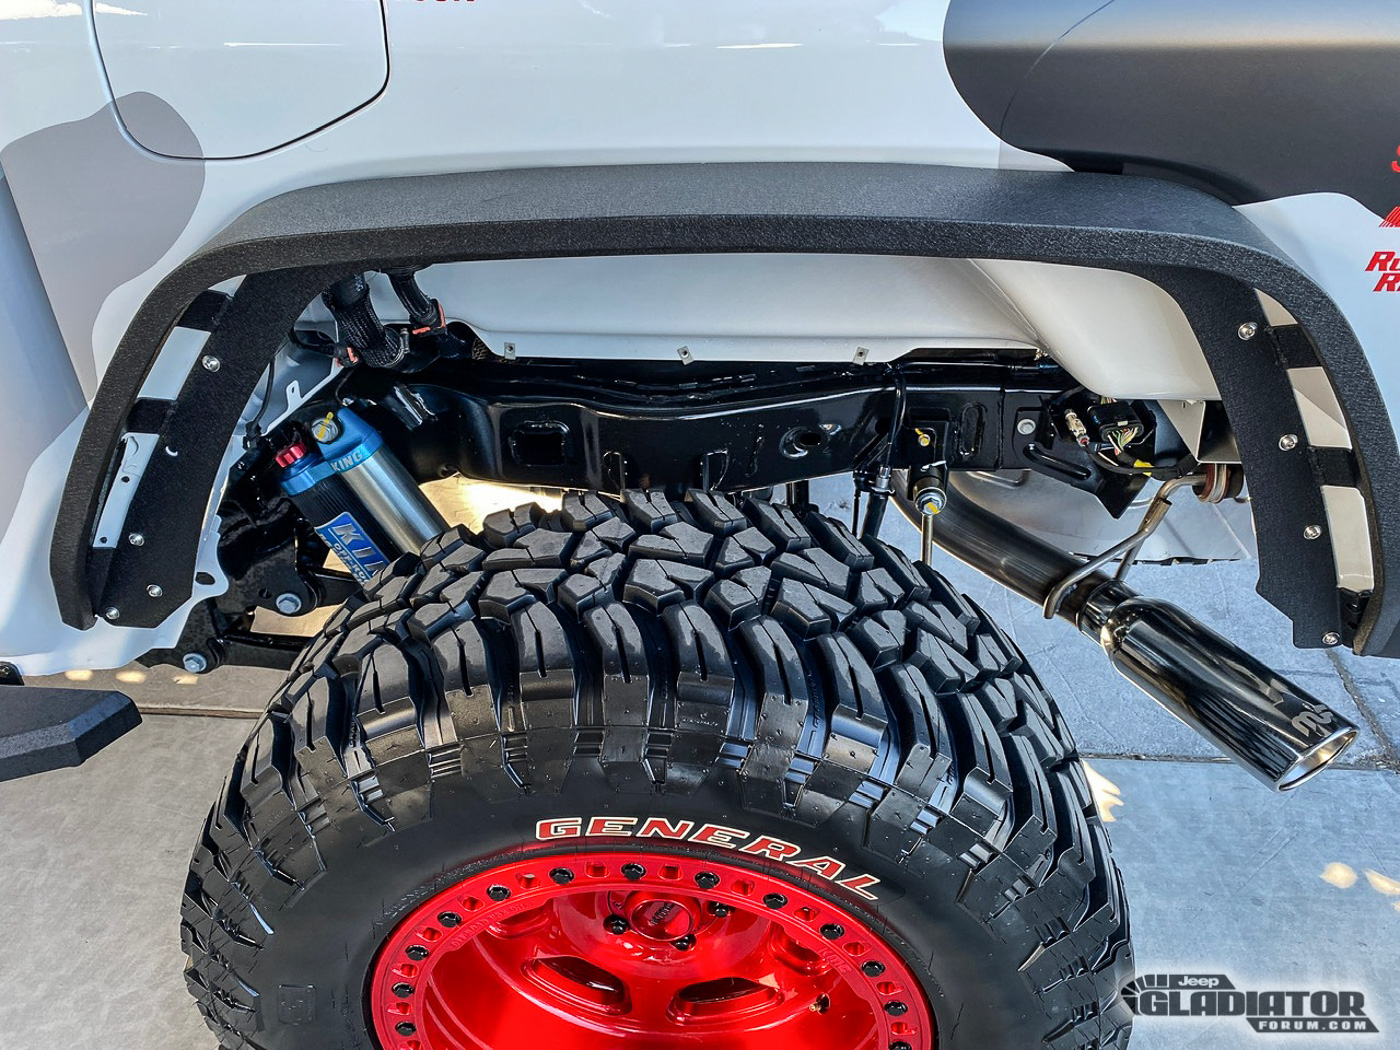 Pro-Motorsports-Supercharged-JT-Jeep-Gladiator-SEMA-Build--12.jpg